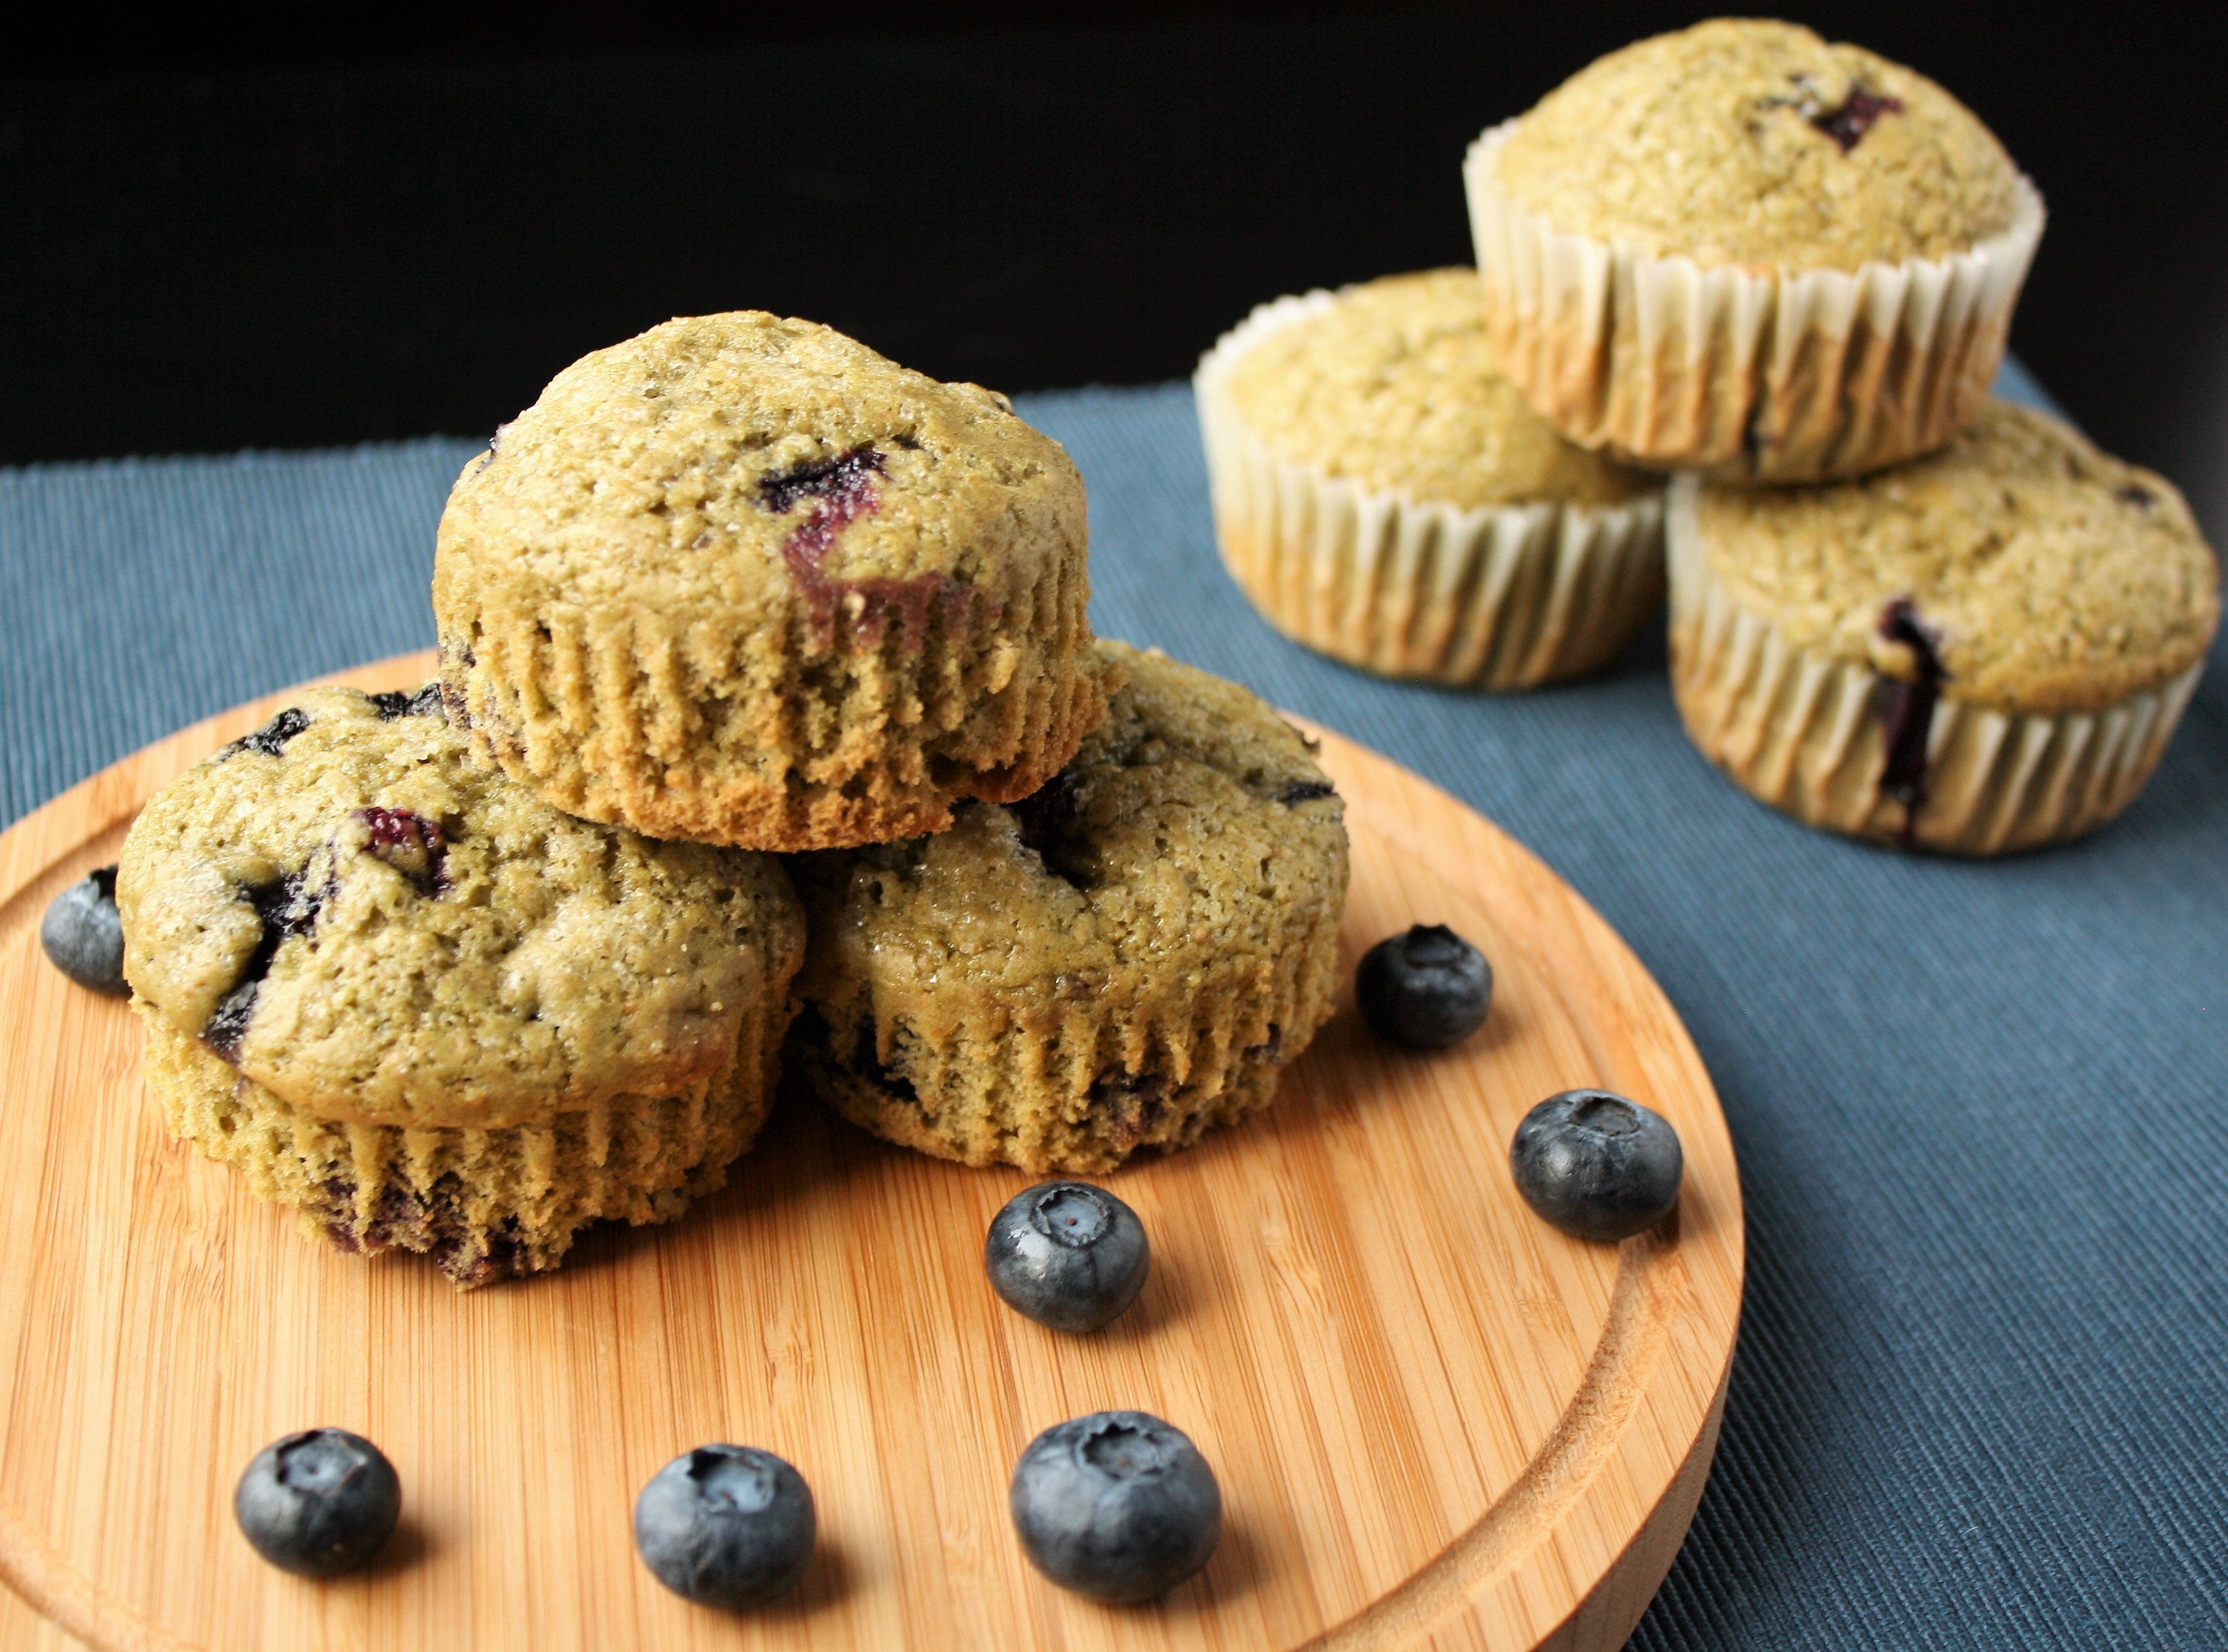 Blueberry Matcha Muffins (AKA: Superfood Muffins!)